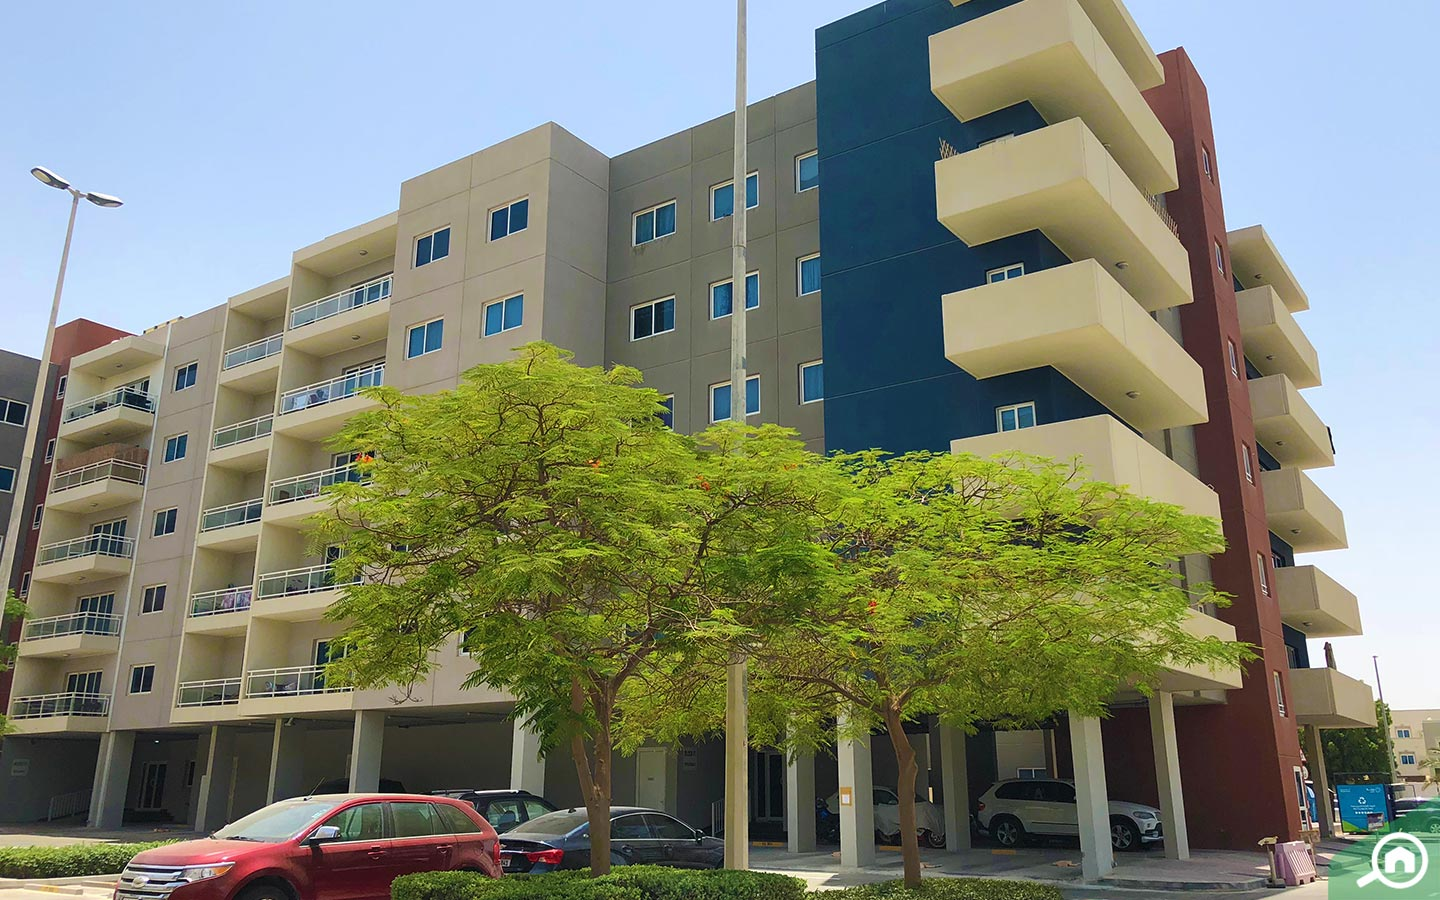 View of apartments in Al Reef, where foreign investors can buy property in Abu Dhabi